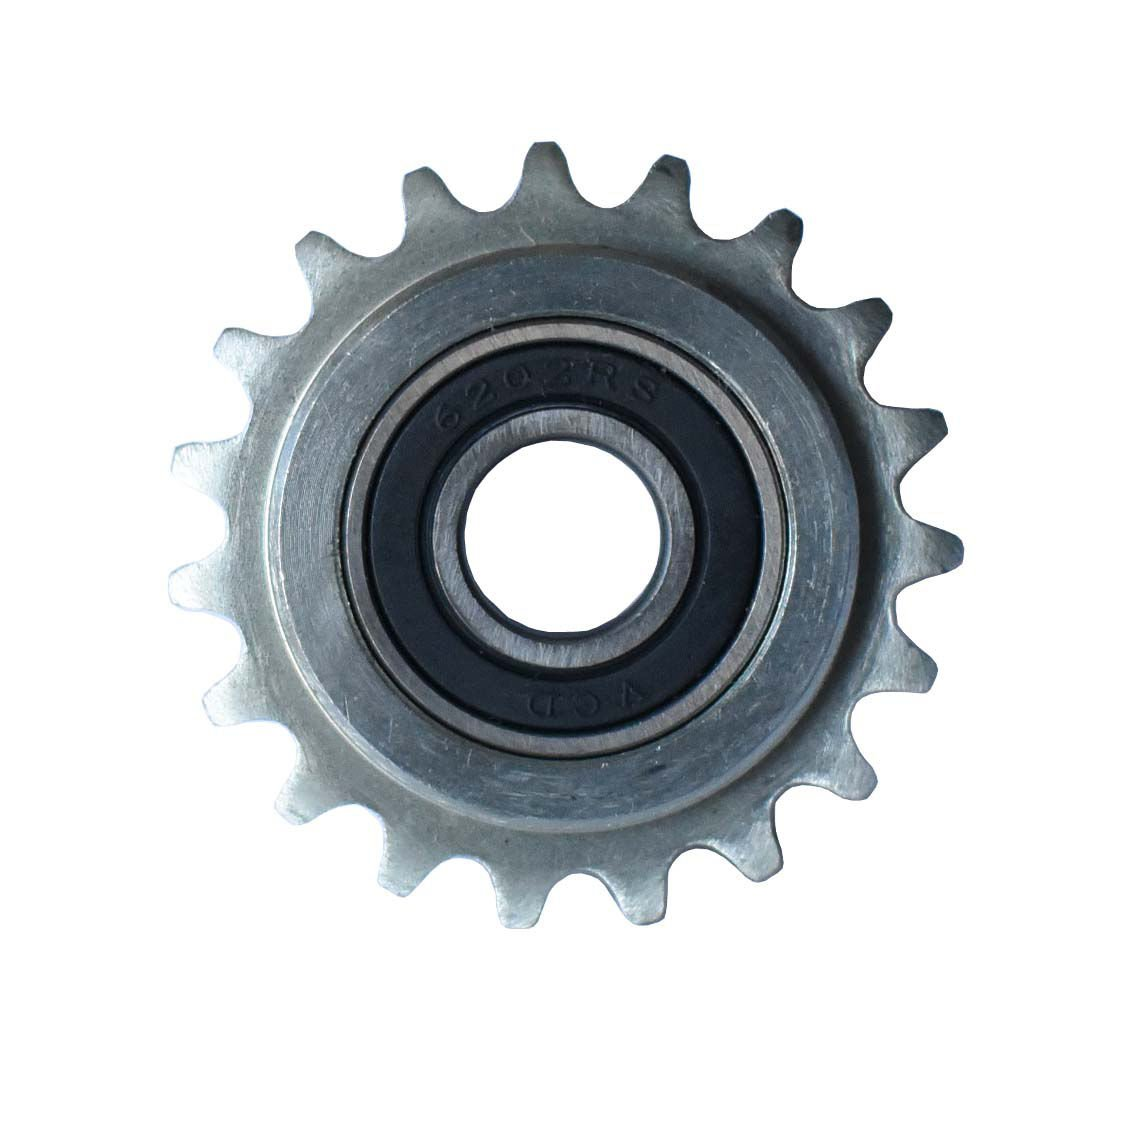 35BB19-5/8'' Bore 19 Tooth Idler Sprocket for 35-1 Roller Chain by Jeremywell